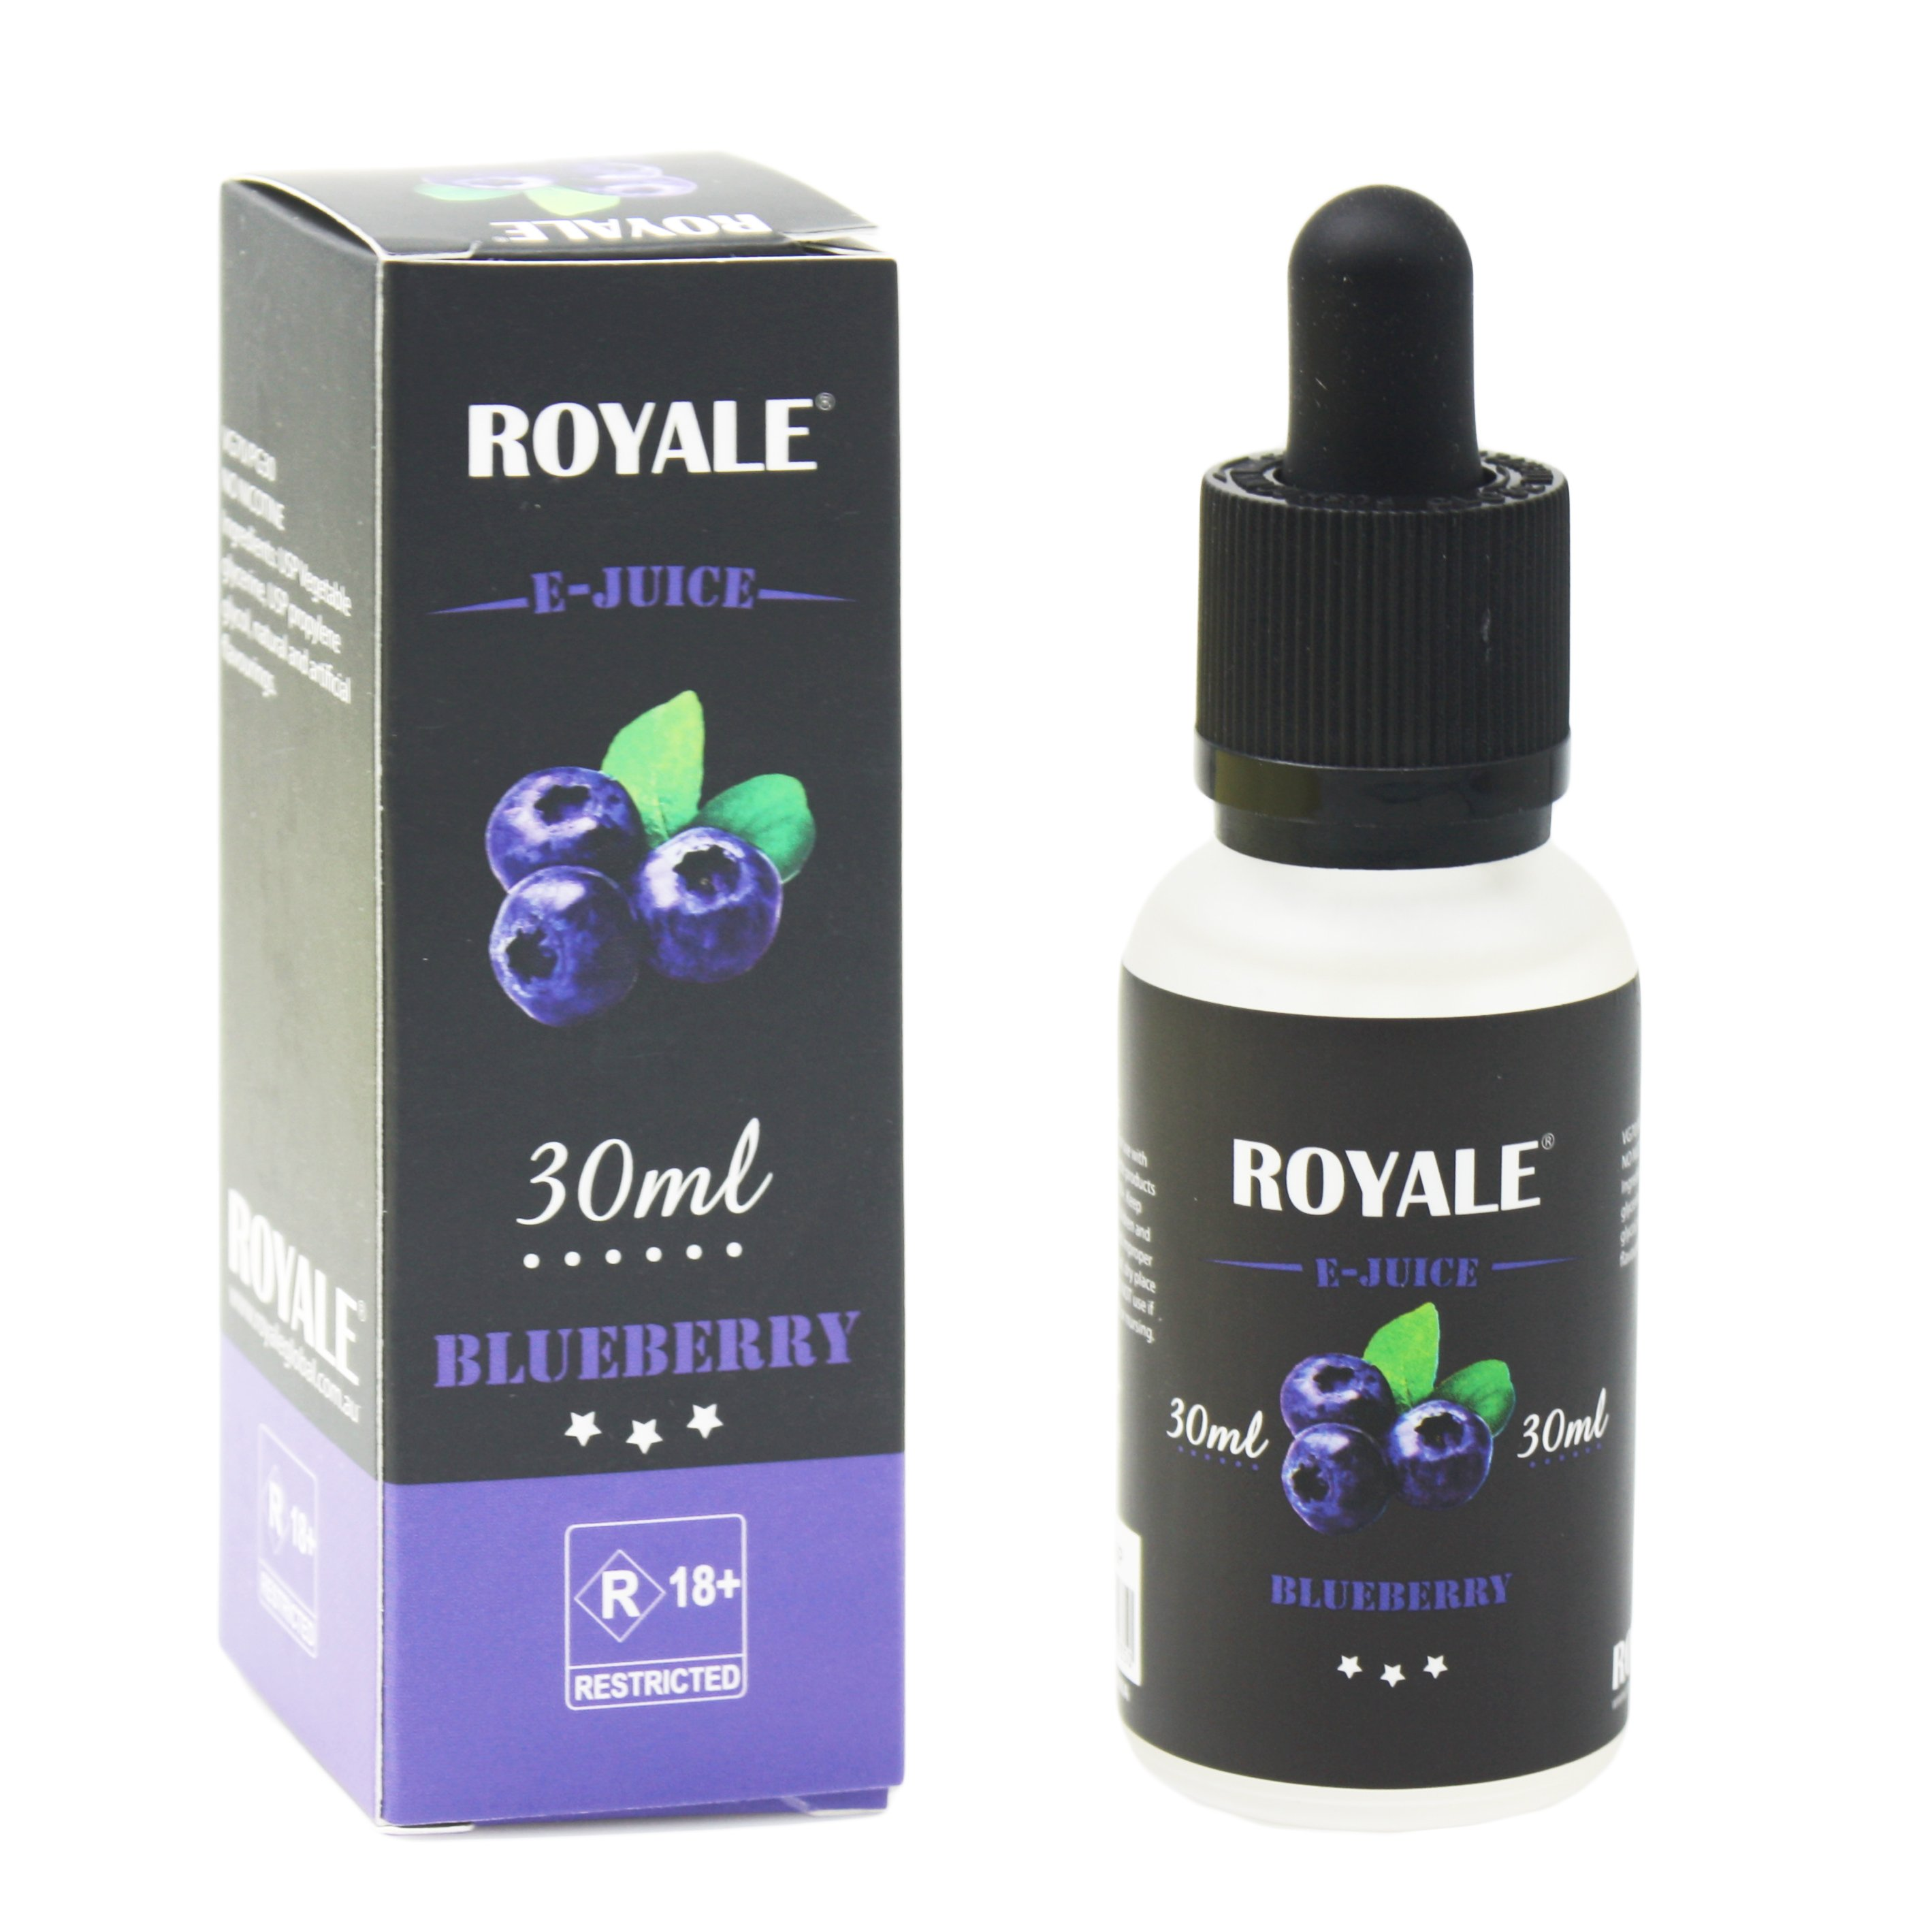 Royale E-Juice - Blueberry